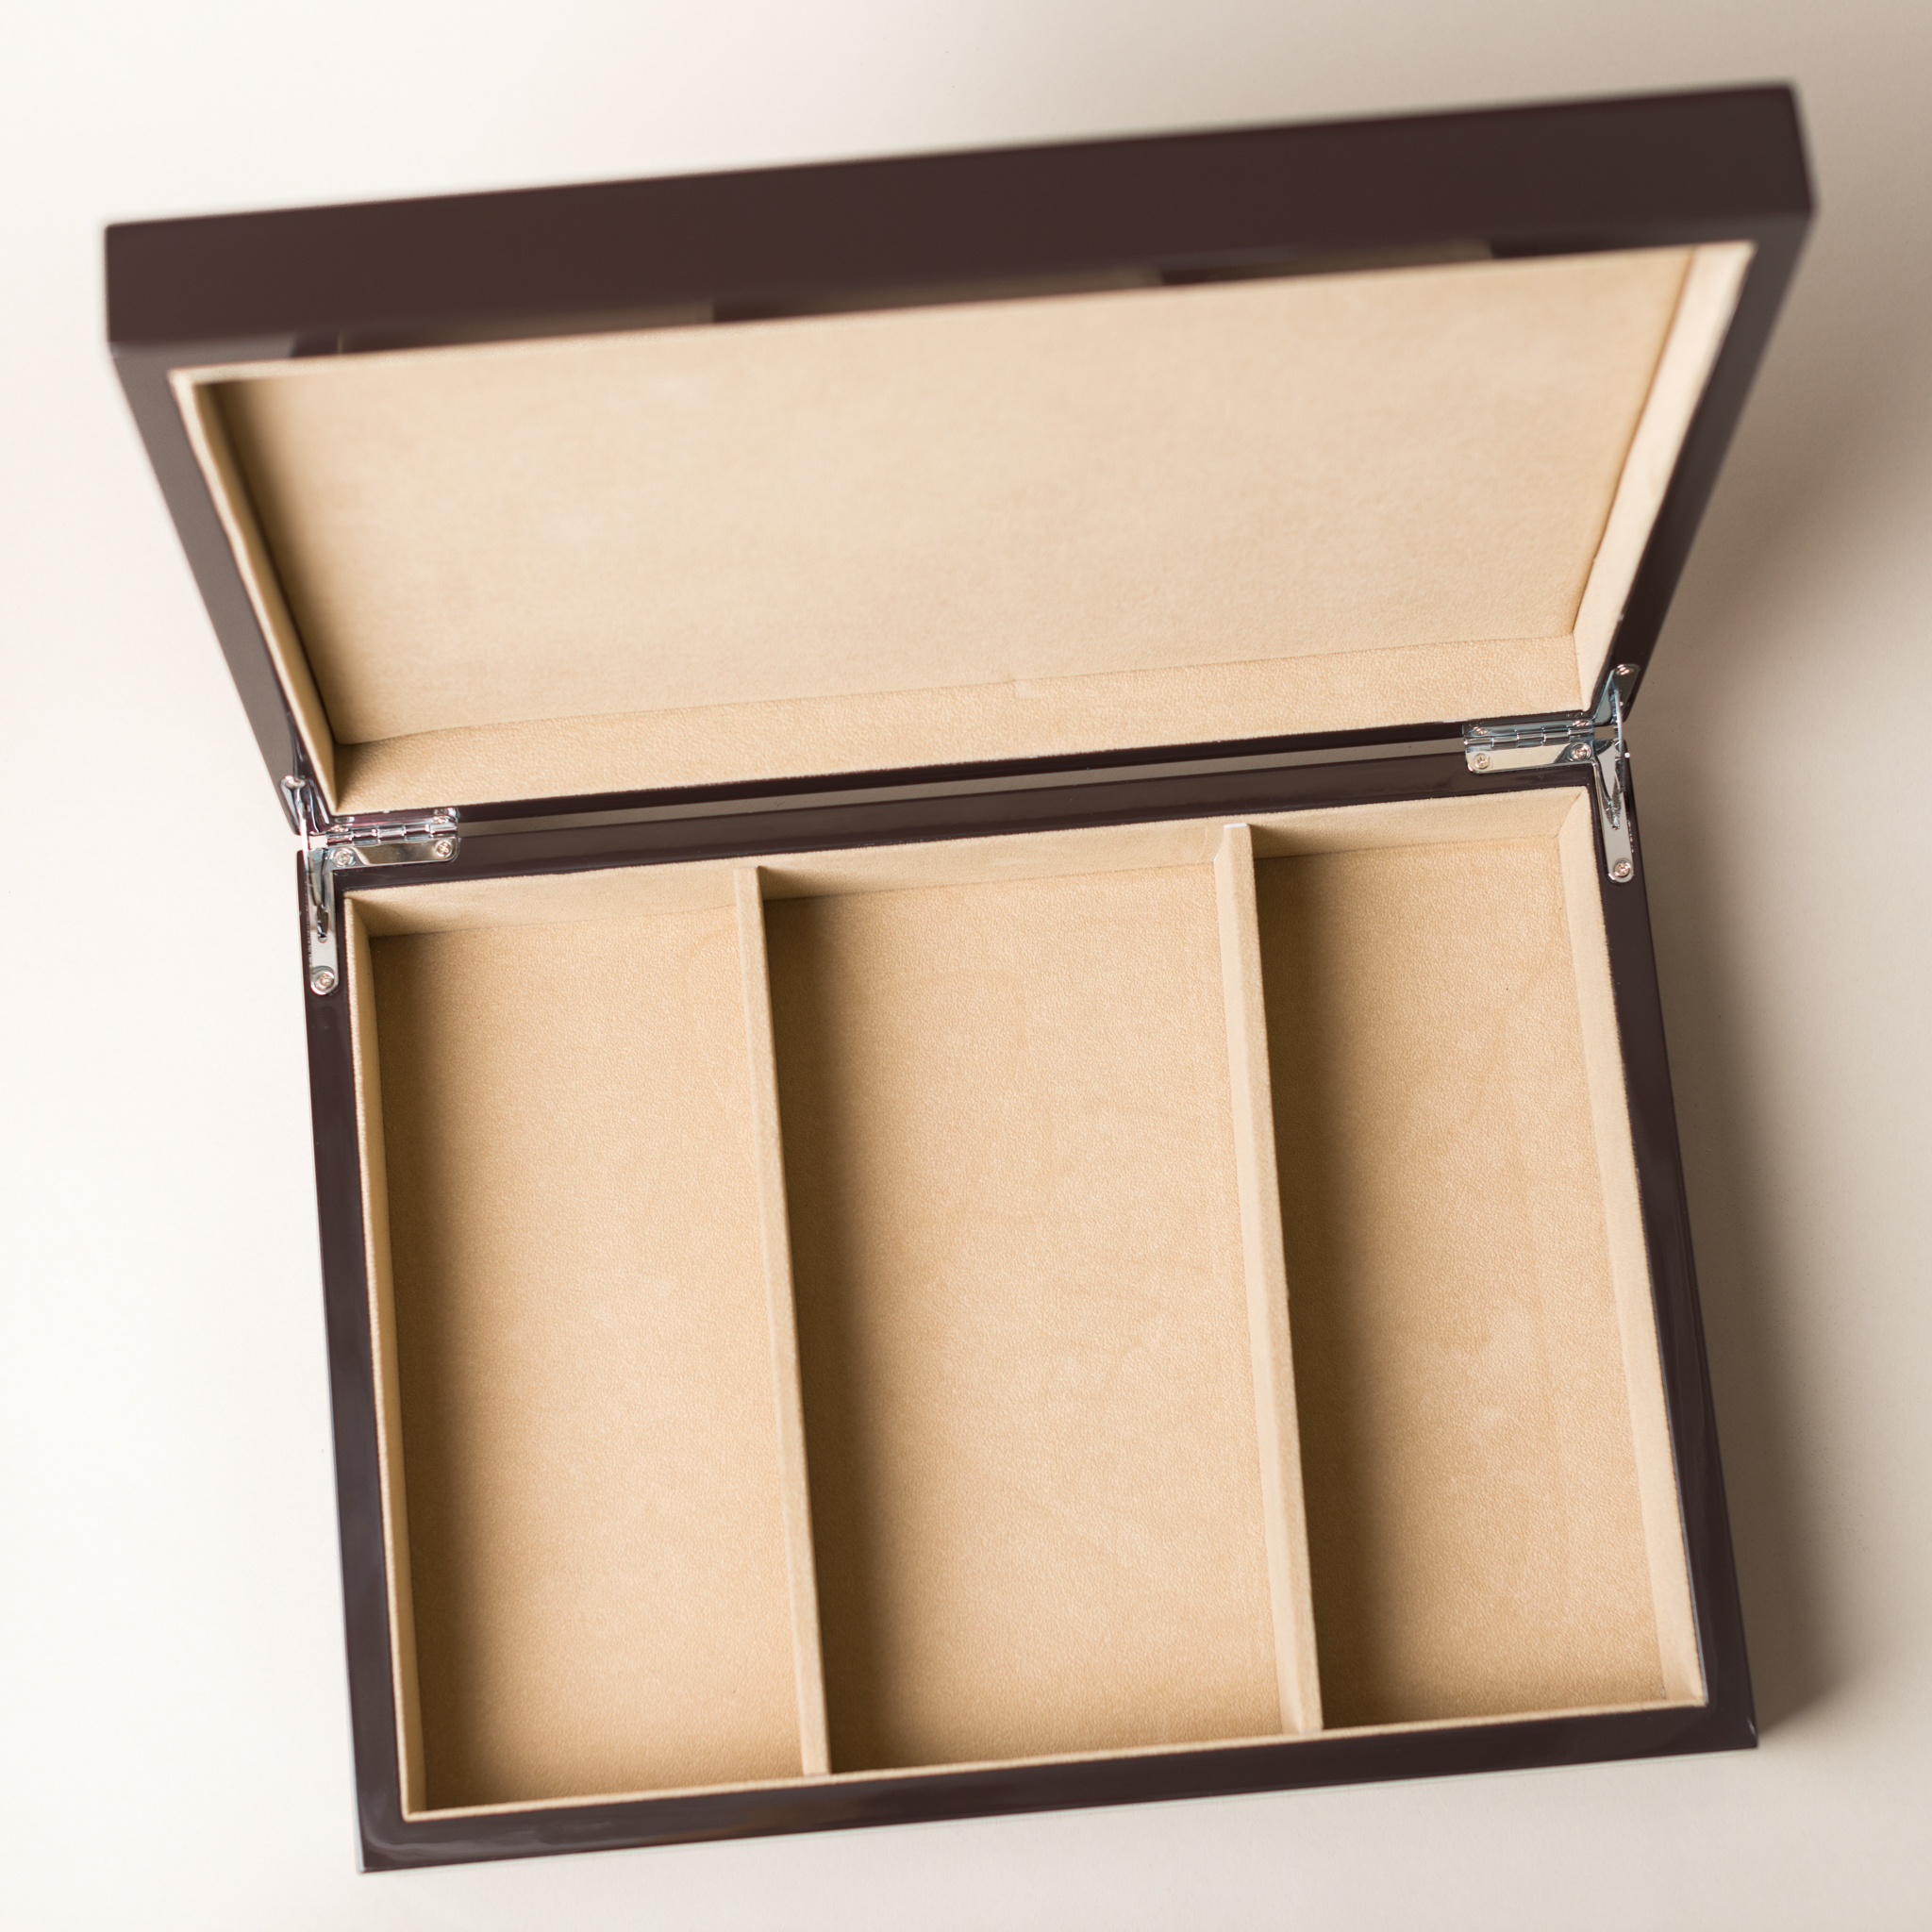 The Hives & Honey coffee table box with our super glossy finish